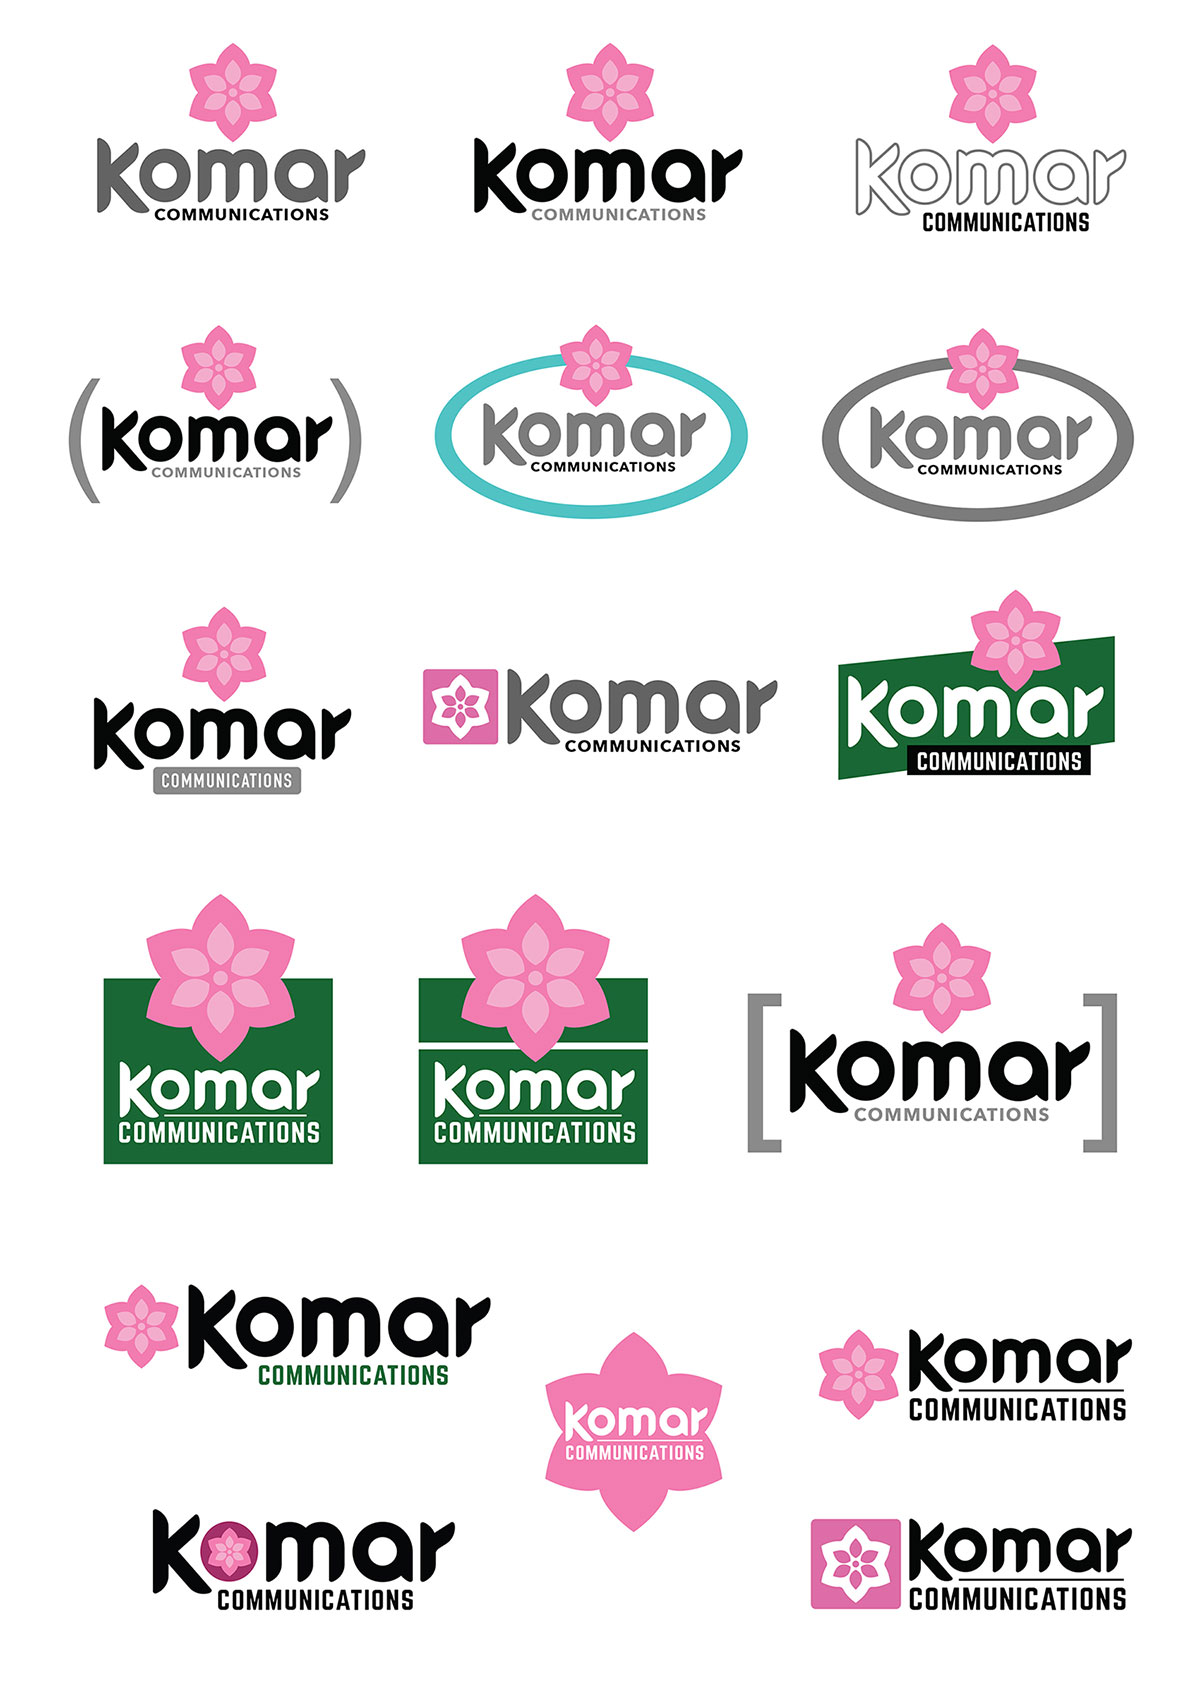 Komar-communications-last-round.jpg